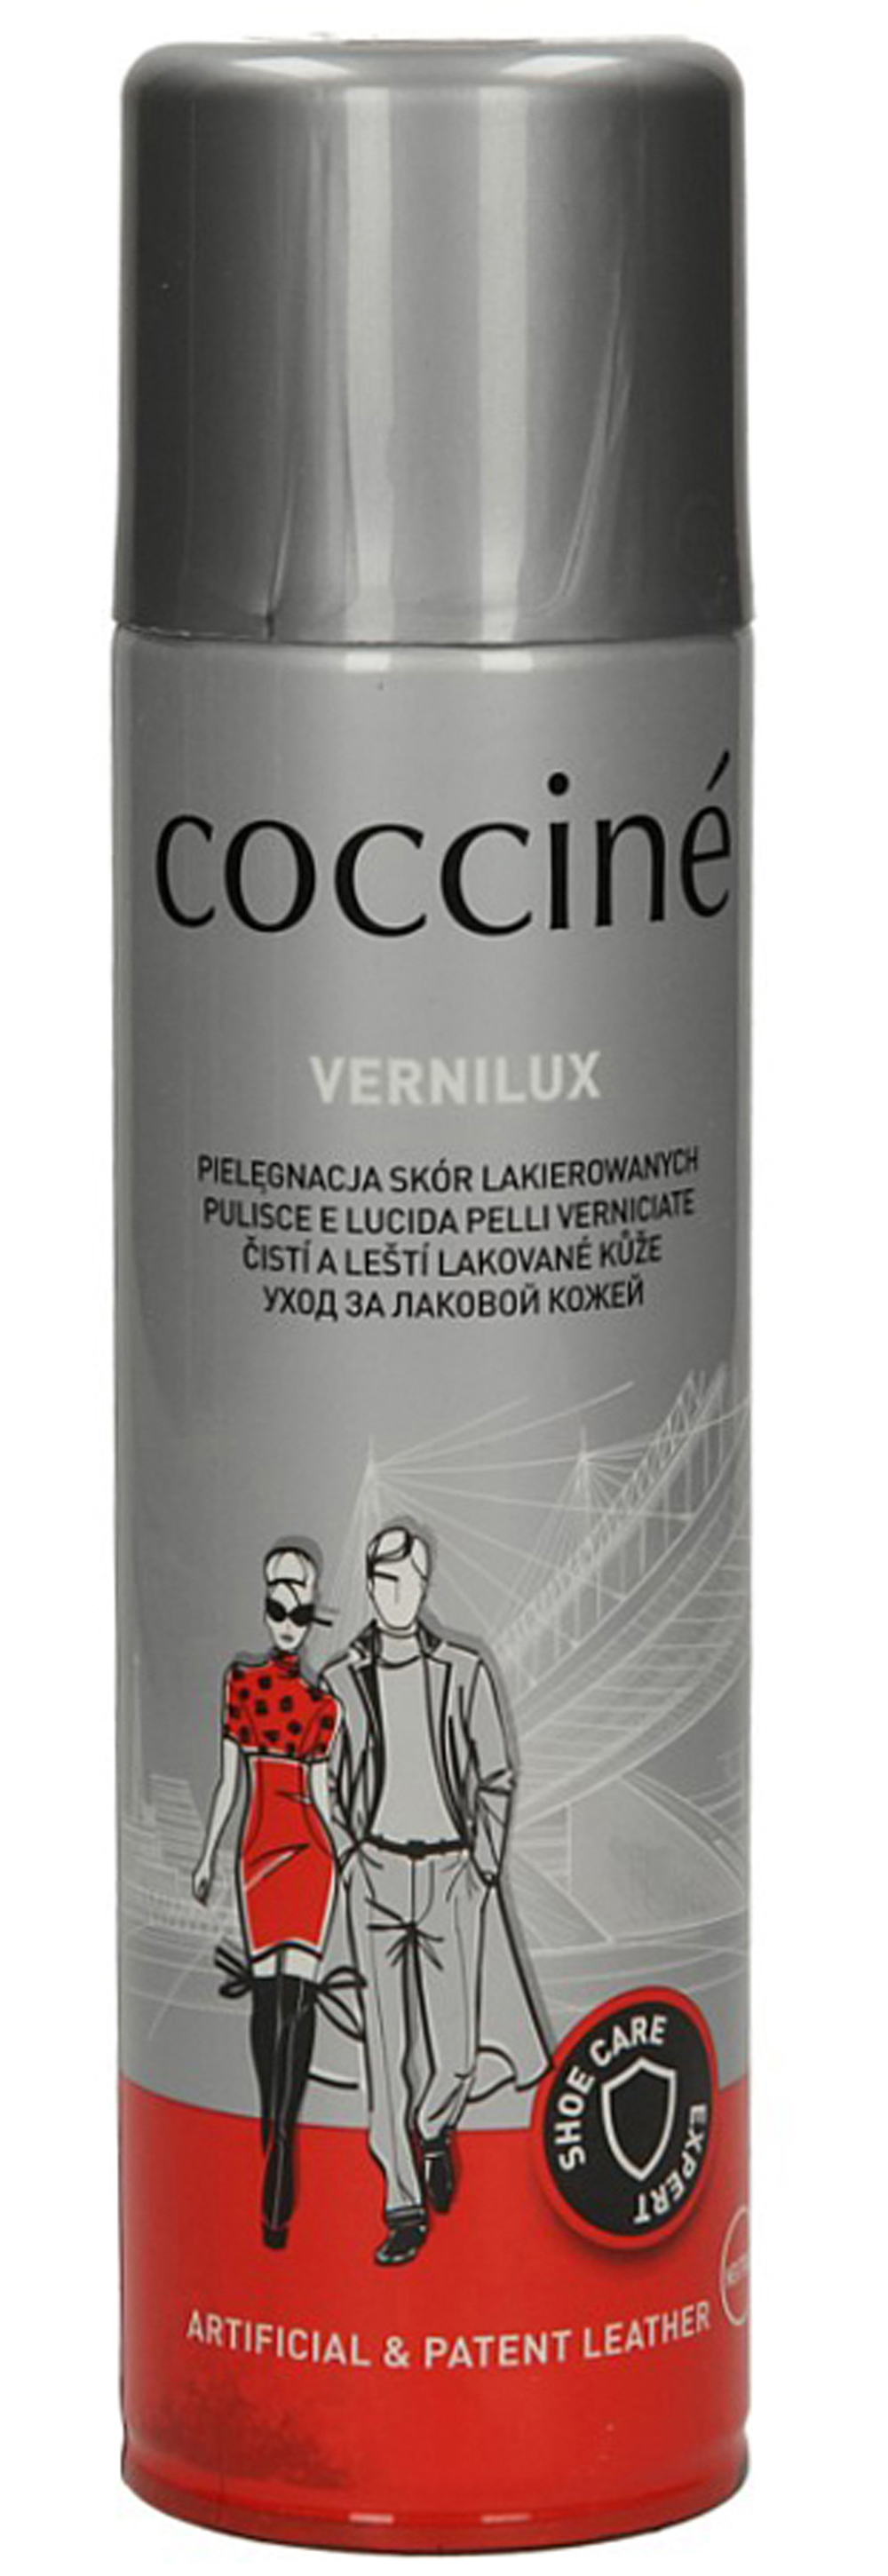 COCCINE VERNILUX SPRAY DO SKÓR LAK producent Coccine